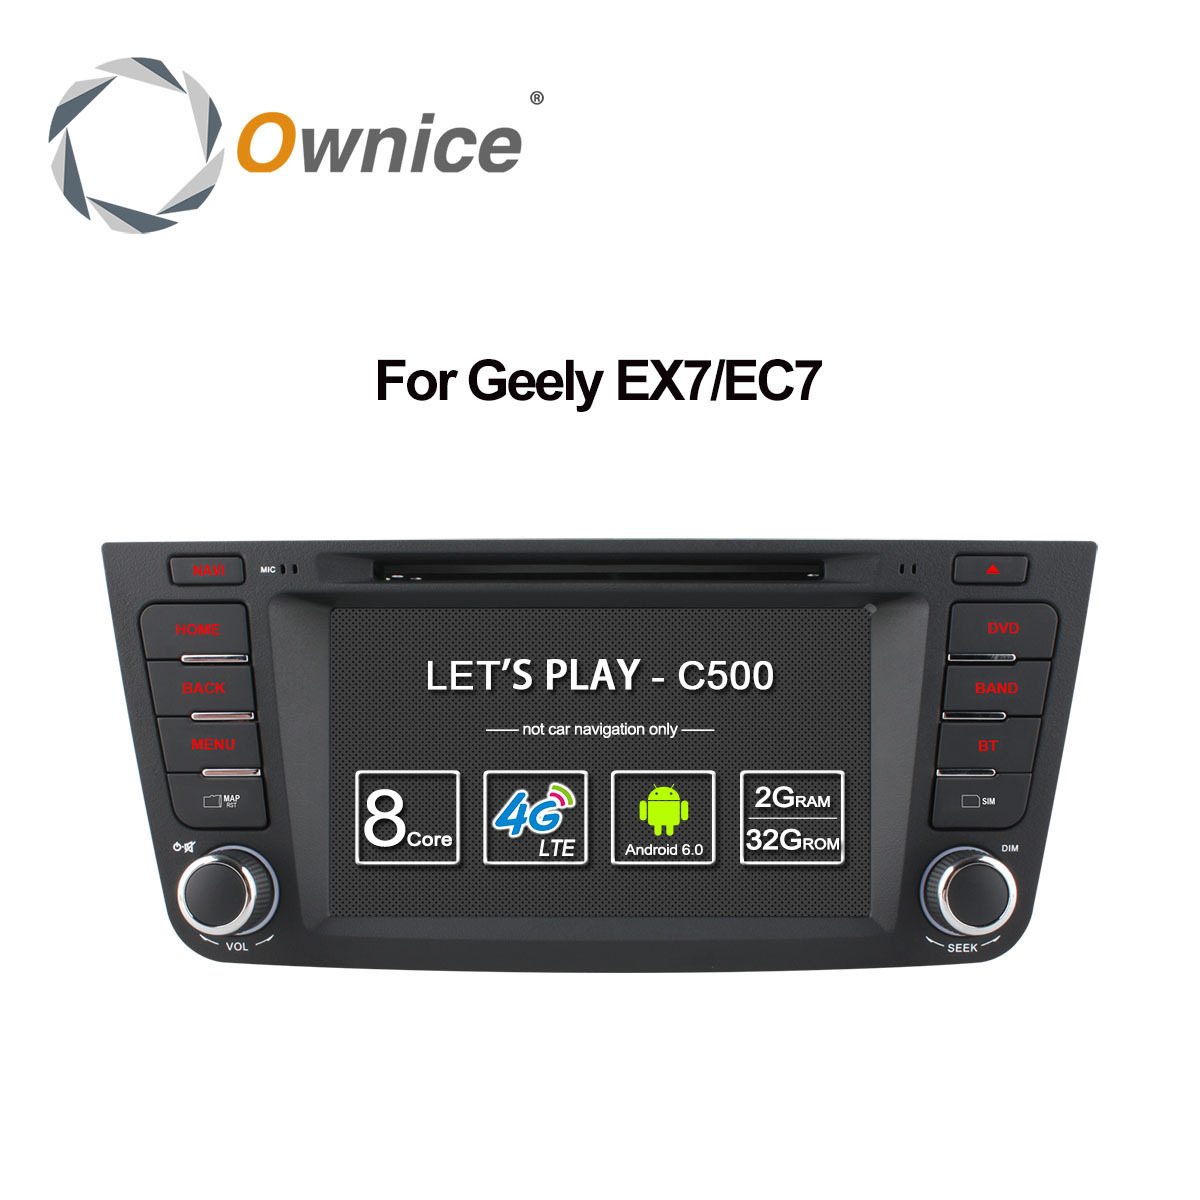 Ownice C500 Octa 8 Core Car DVD Player for Geely Emgrand GX7 EX7 X7 Android 6.0 Gps 2 din 2GB RAM 32GB ROM support 4G DAB